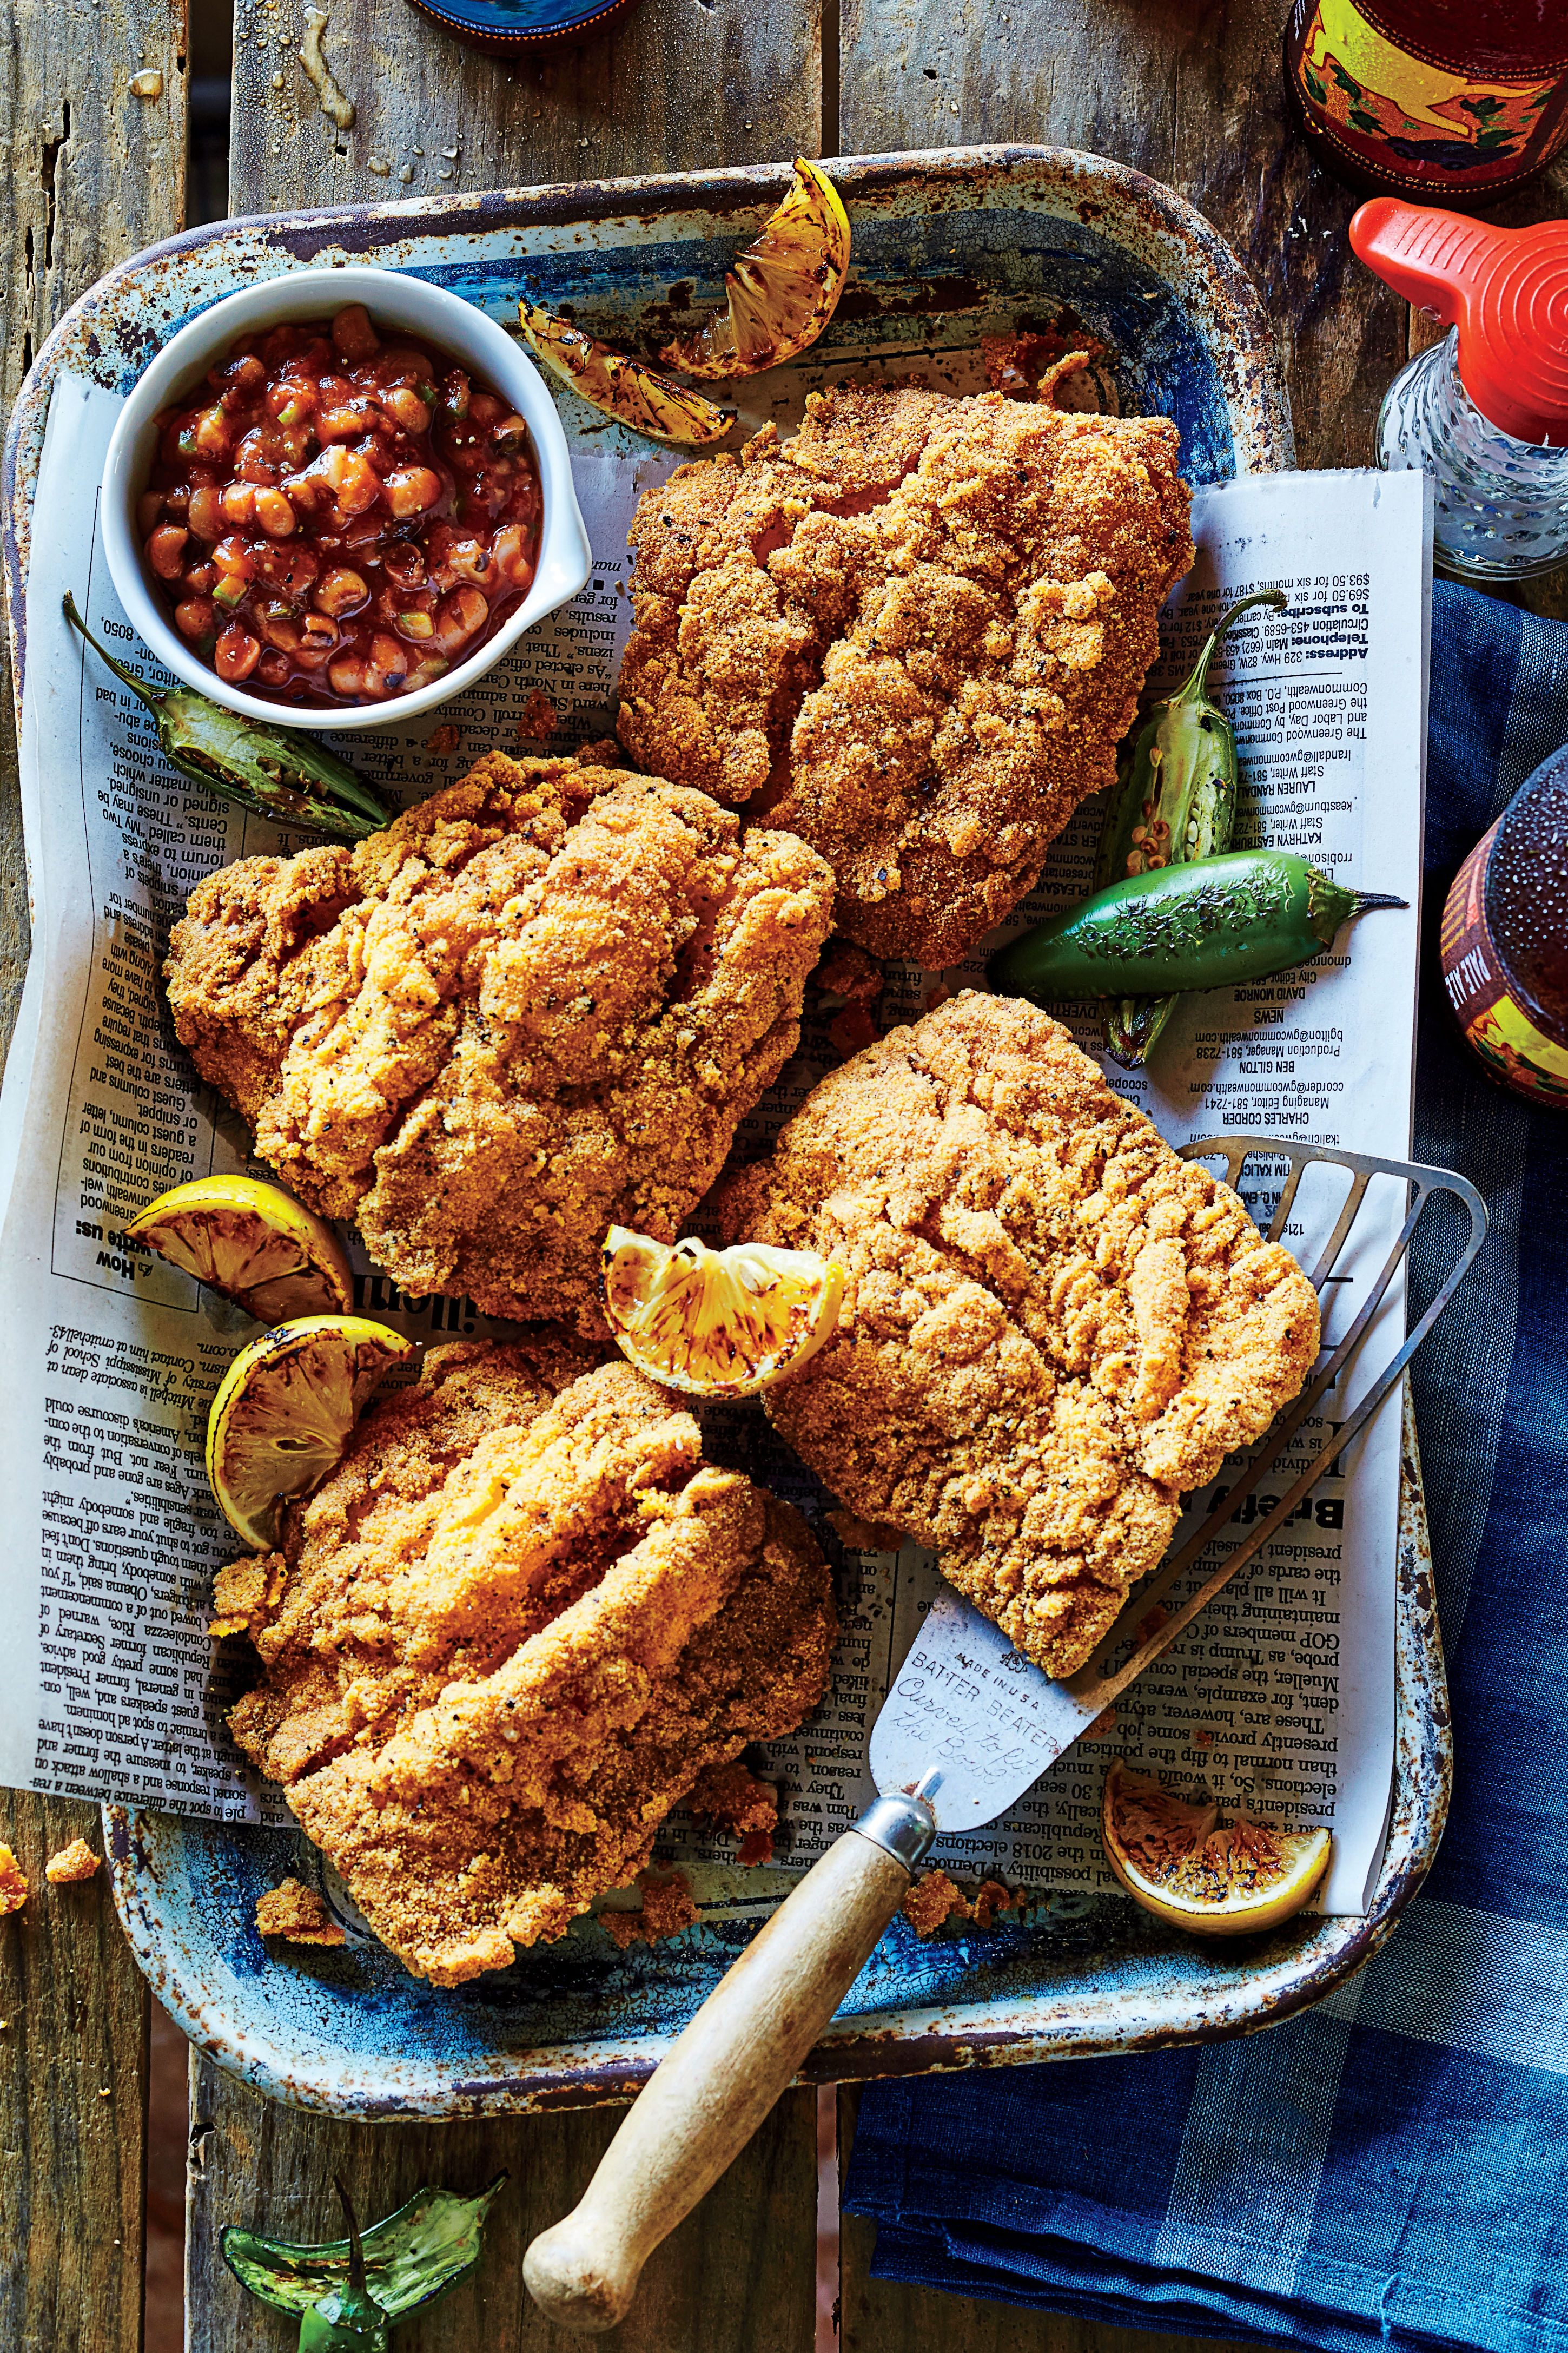 Where to Find the Best Catfish in the South